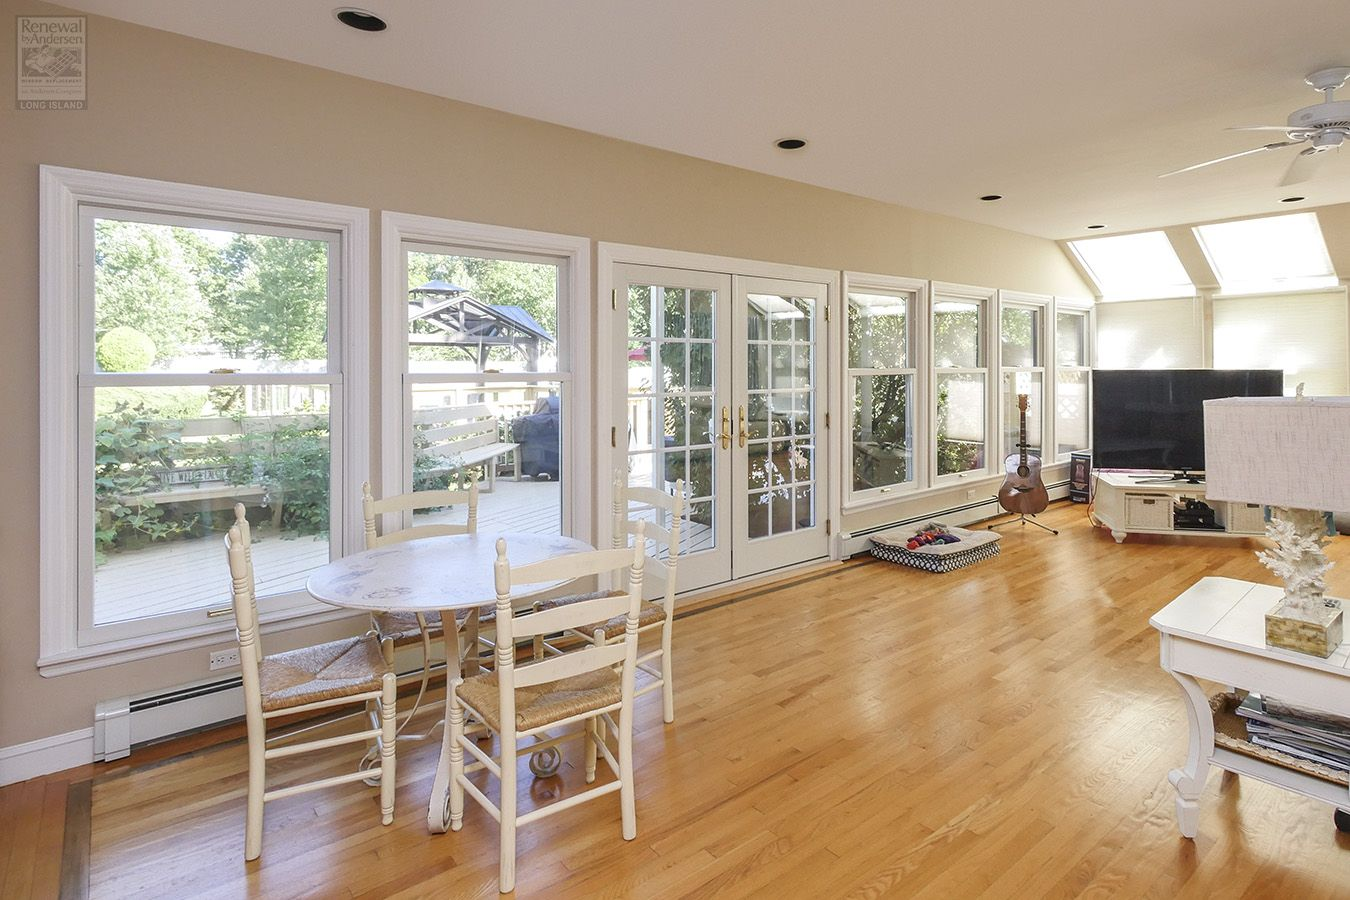 Large Open Family Room And New Windows And Doors From Renewal By Andersen In 2020 Open Family Room Home Remodeling Remodeling Renovation